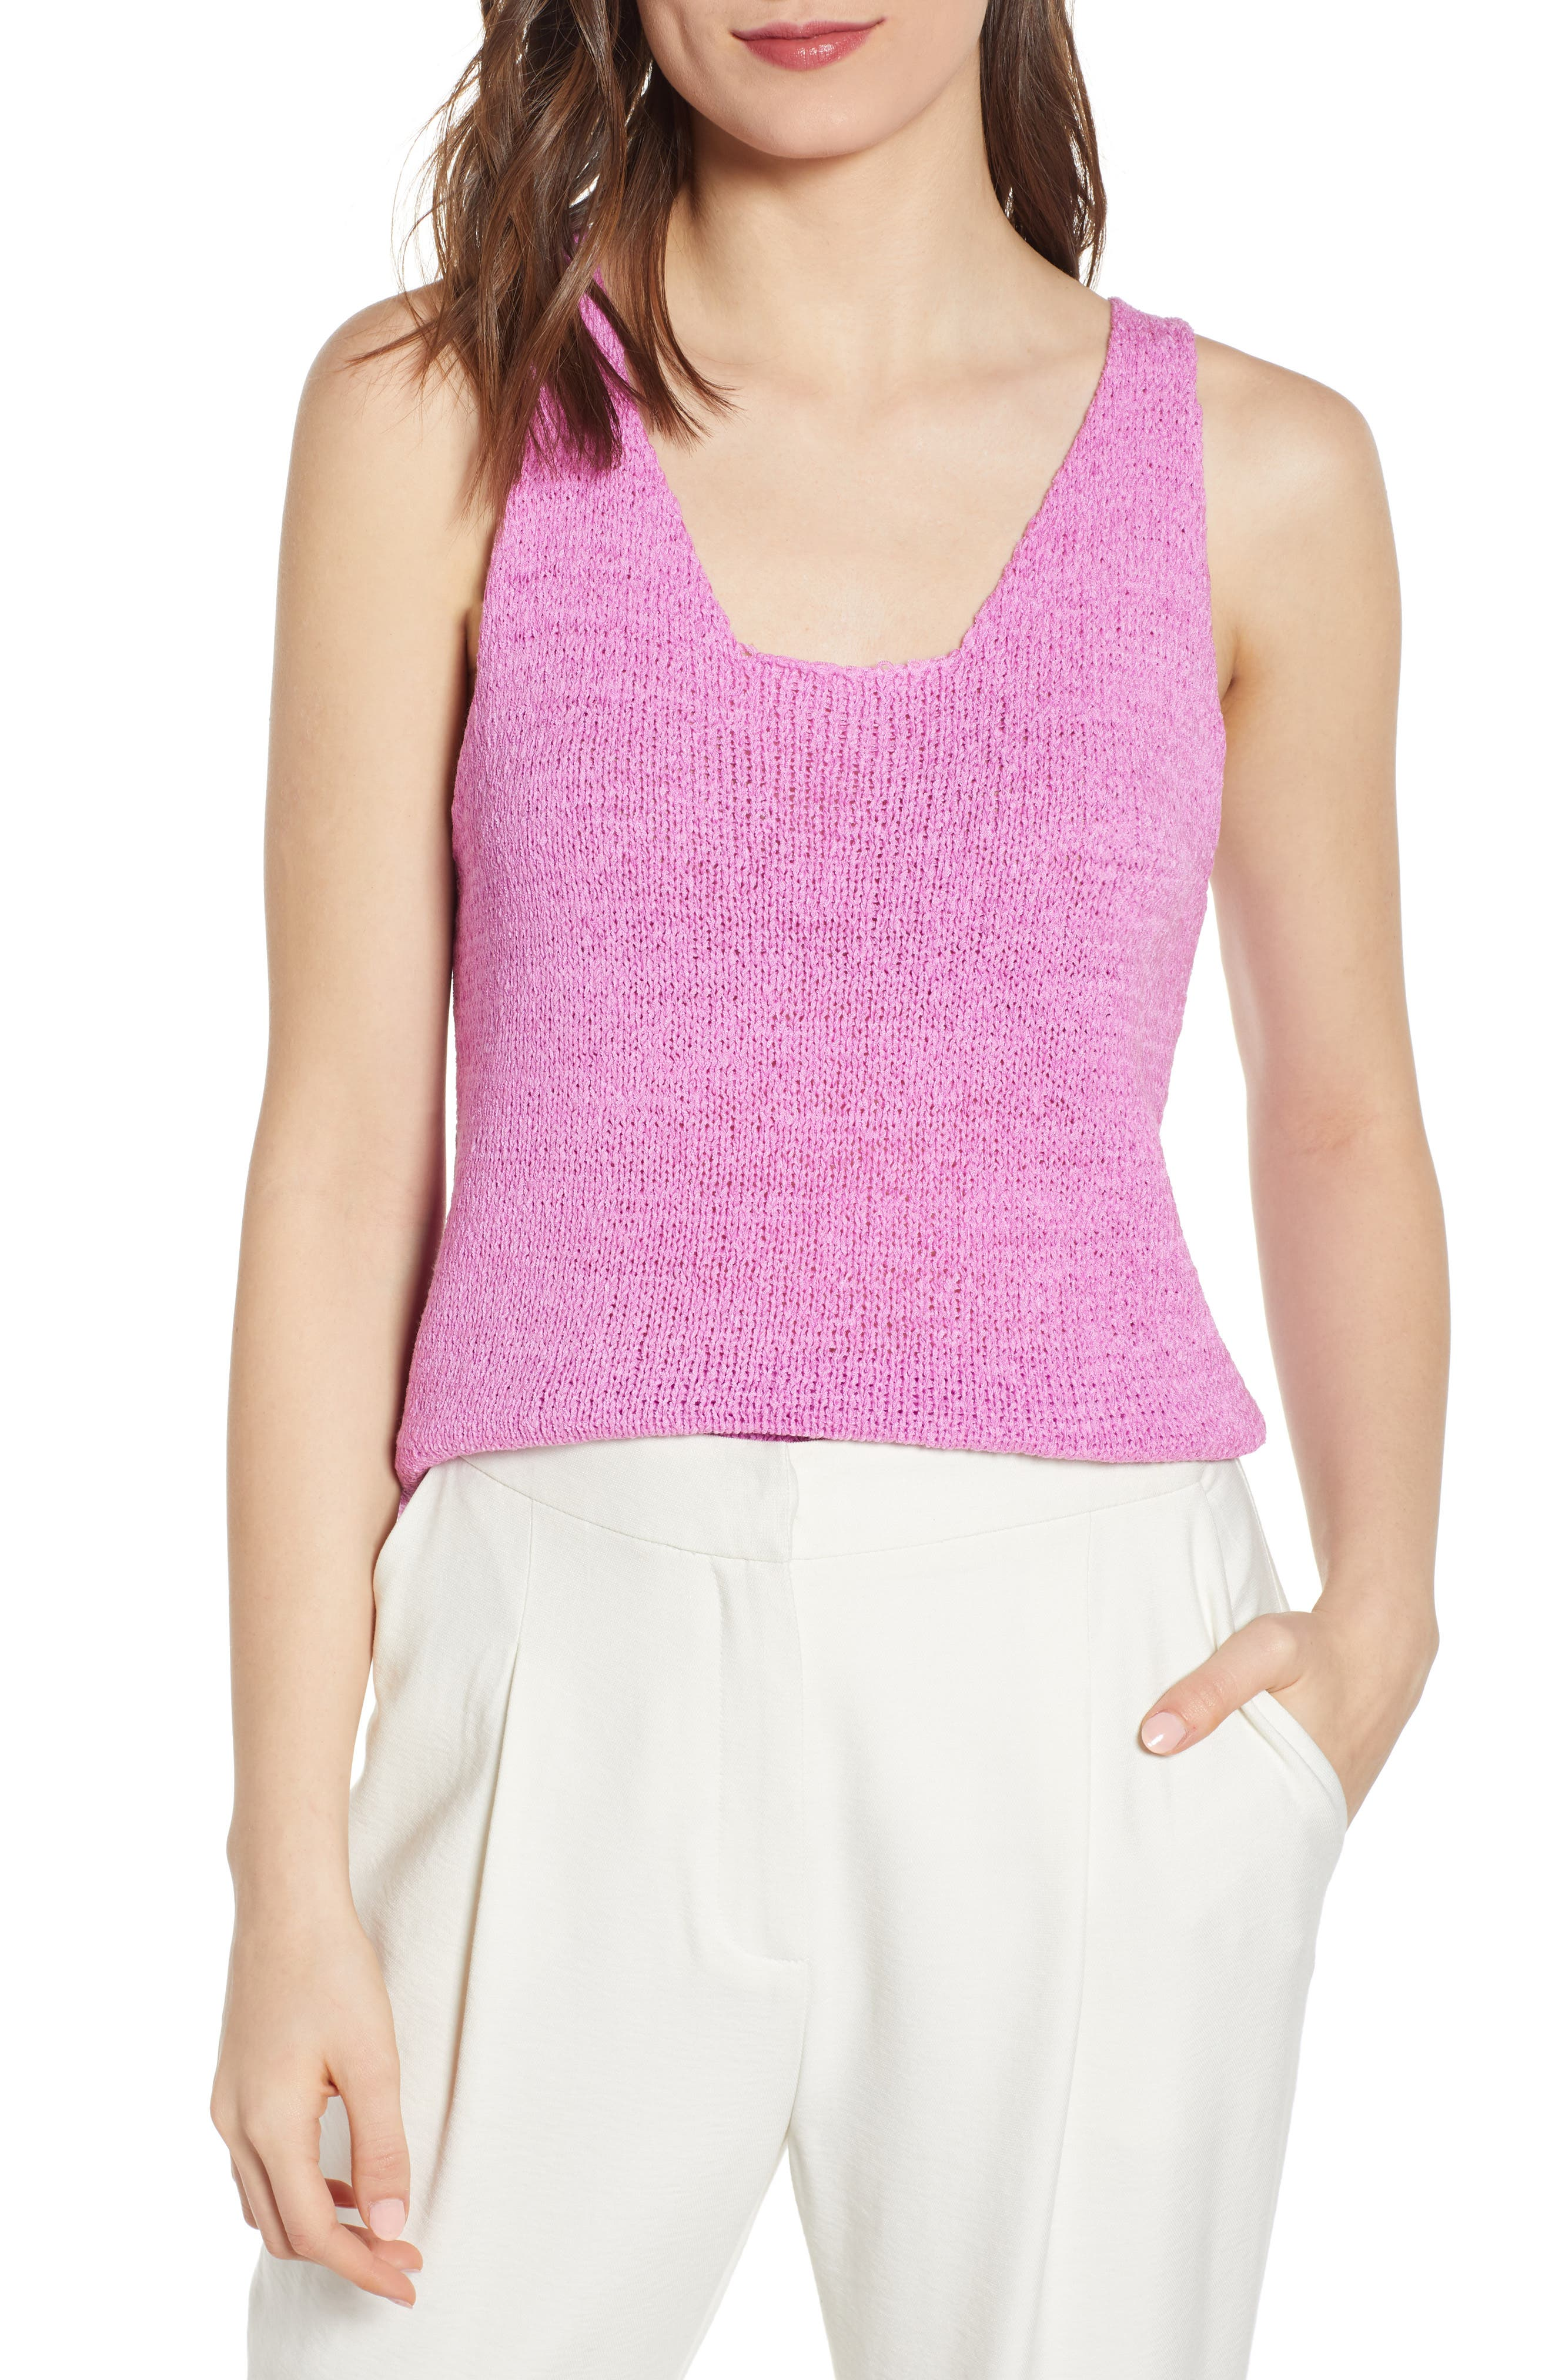 J.o.a. Knit Camisole, Pink